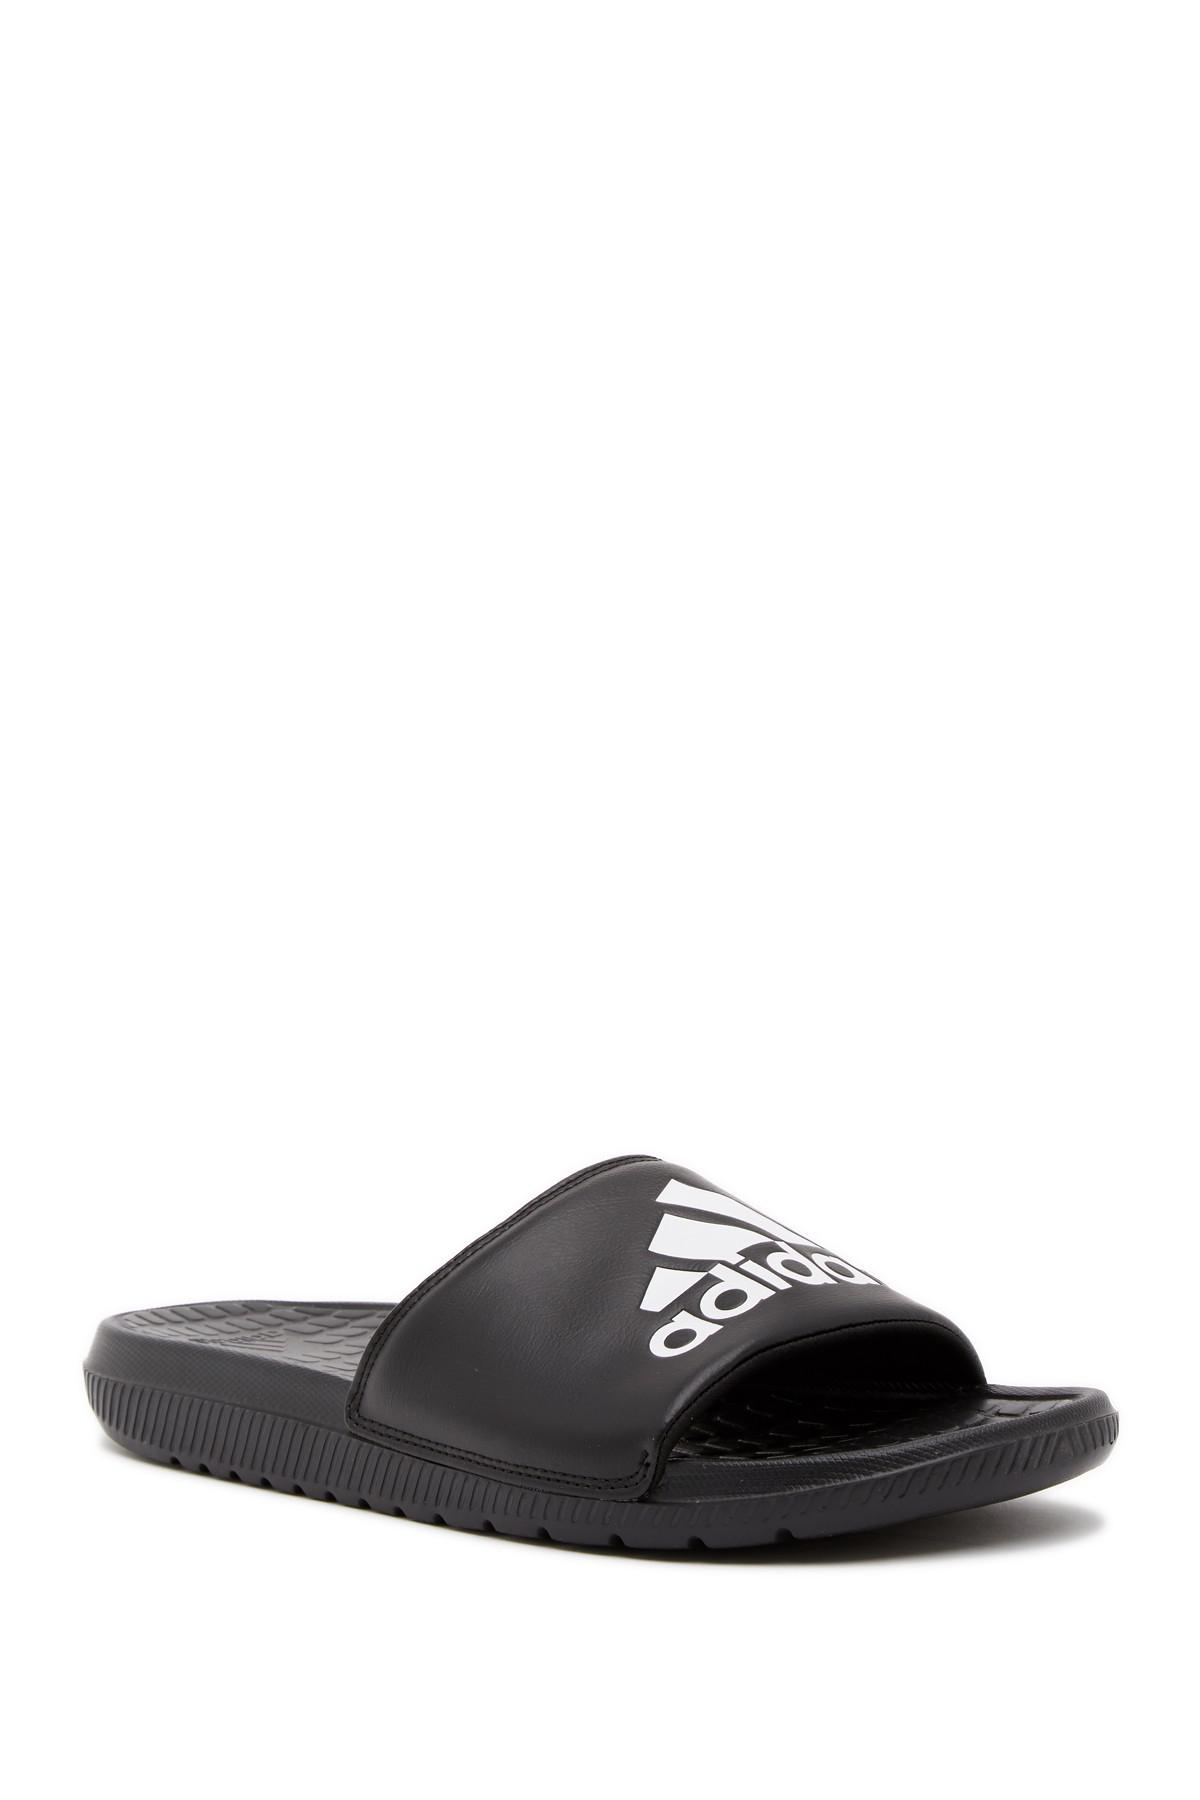 6f6f03731a28 Lyst - adidas Voloomix Slide Sandal in Black for Men